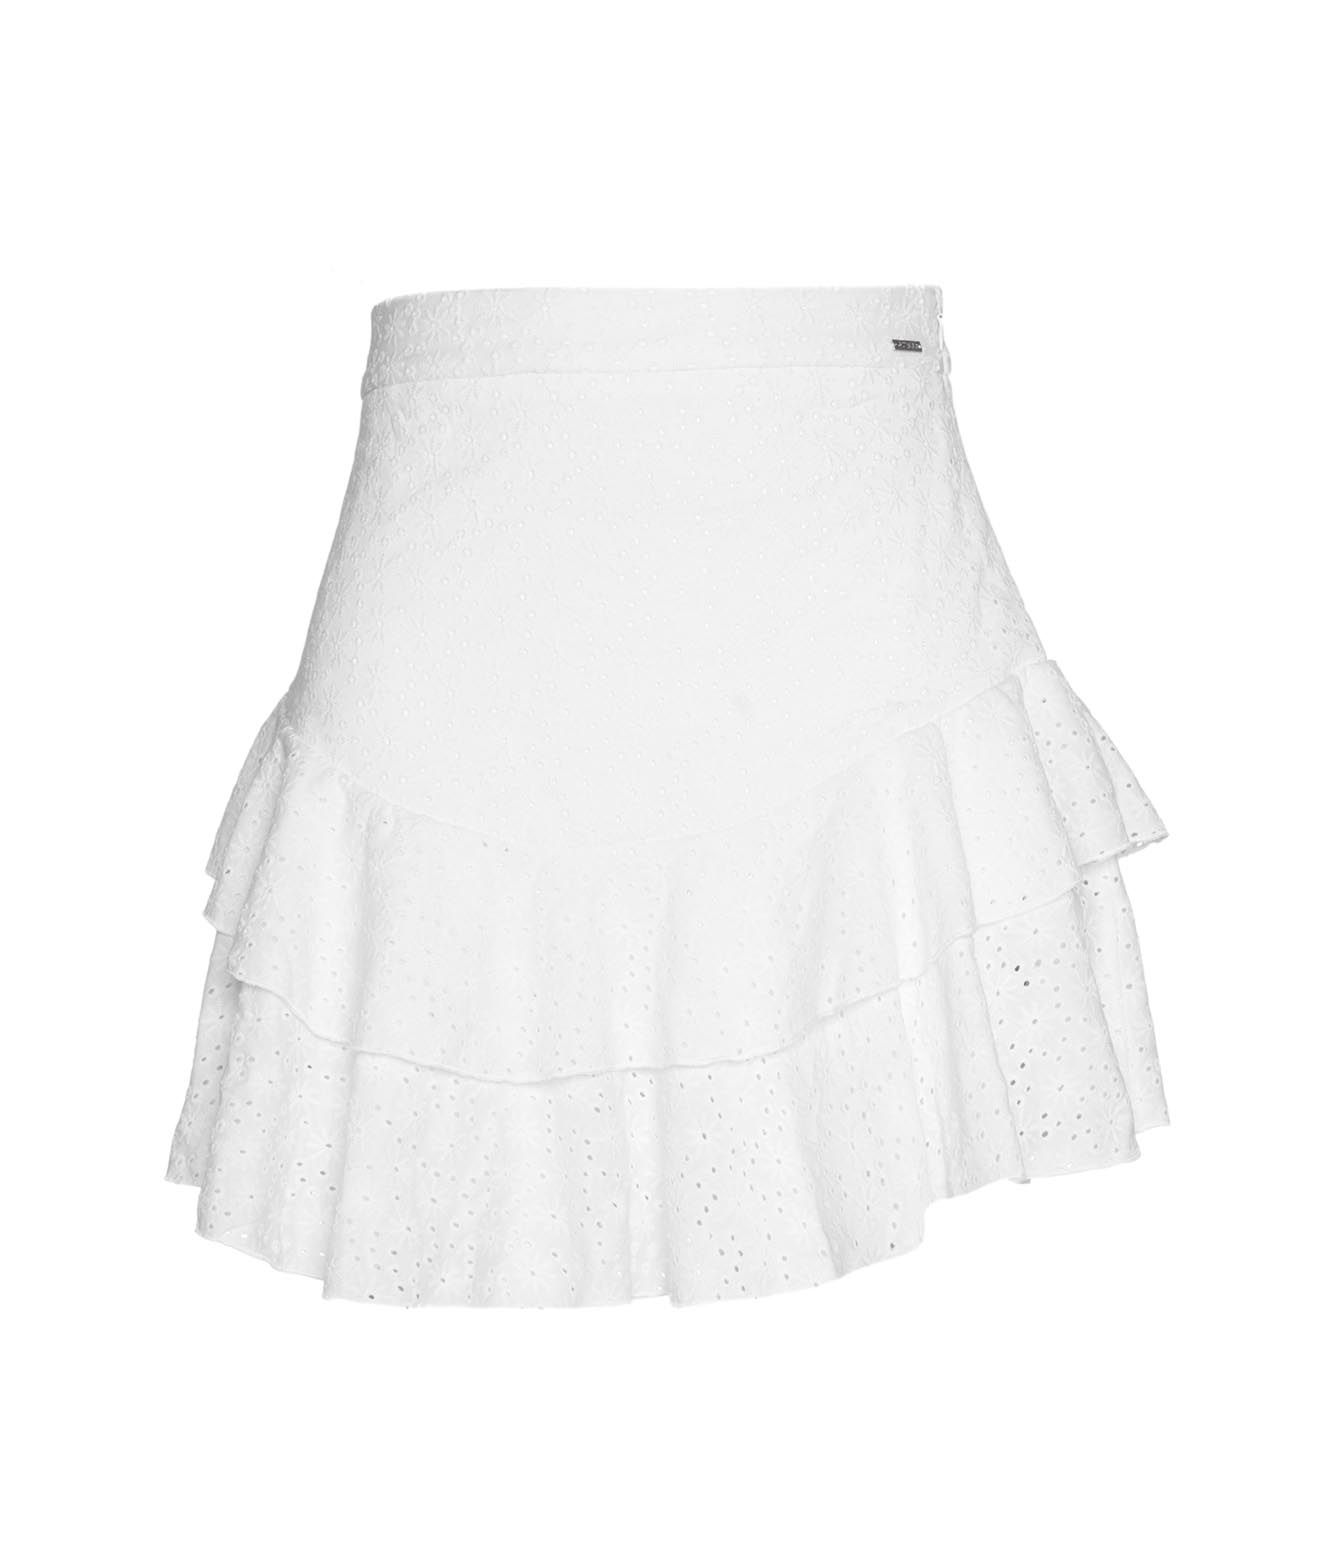 Guess Skirts GUESS WOMEN'S W1GD0FKALQ011TWHT WHITE OTHER MATERIALS SKIRT